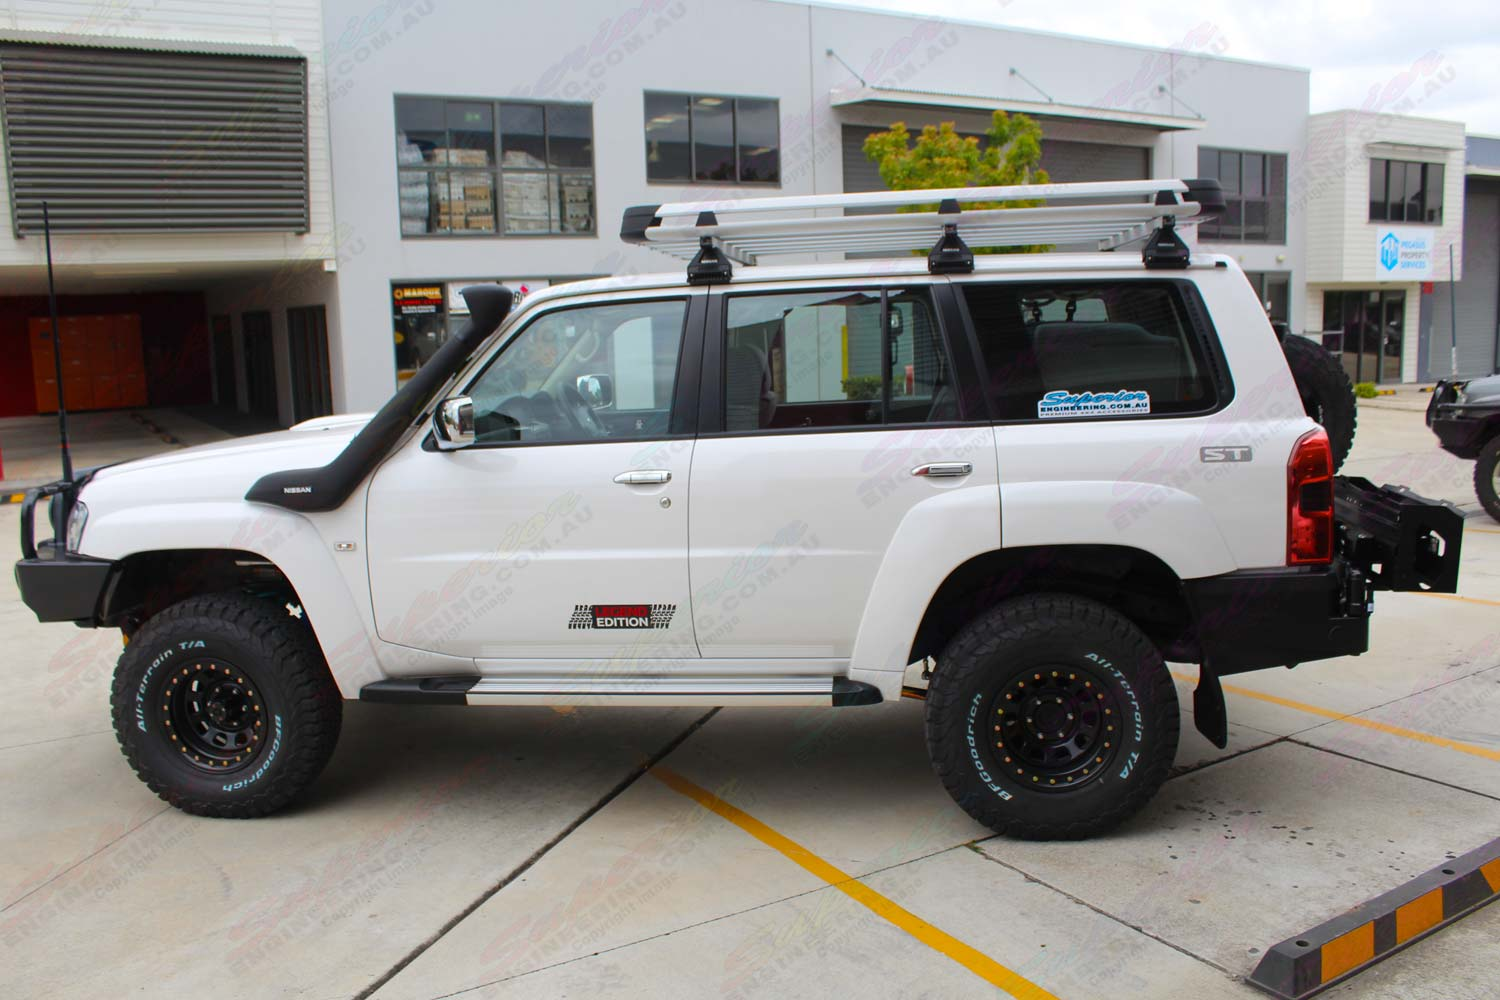 Left side view of a white Nissan Patrol Wagon after being fitted with a full custom suspension system and a range of 4x4 accessories by Superior Engineering